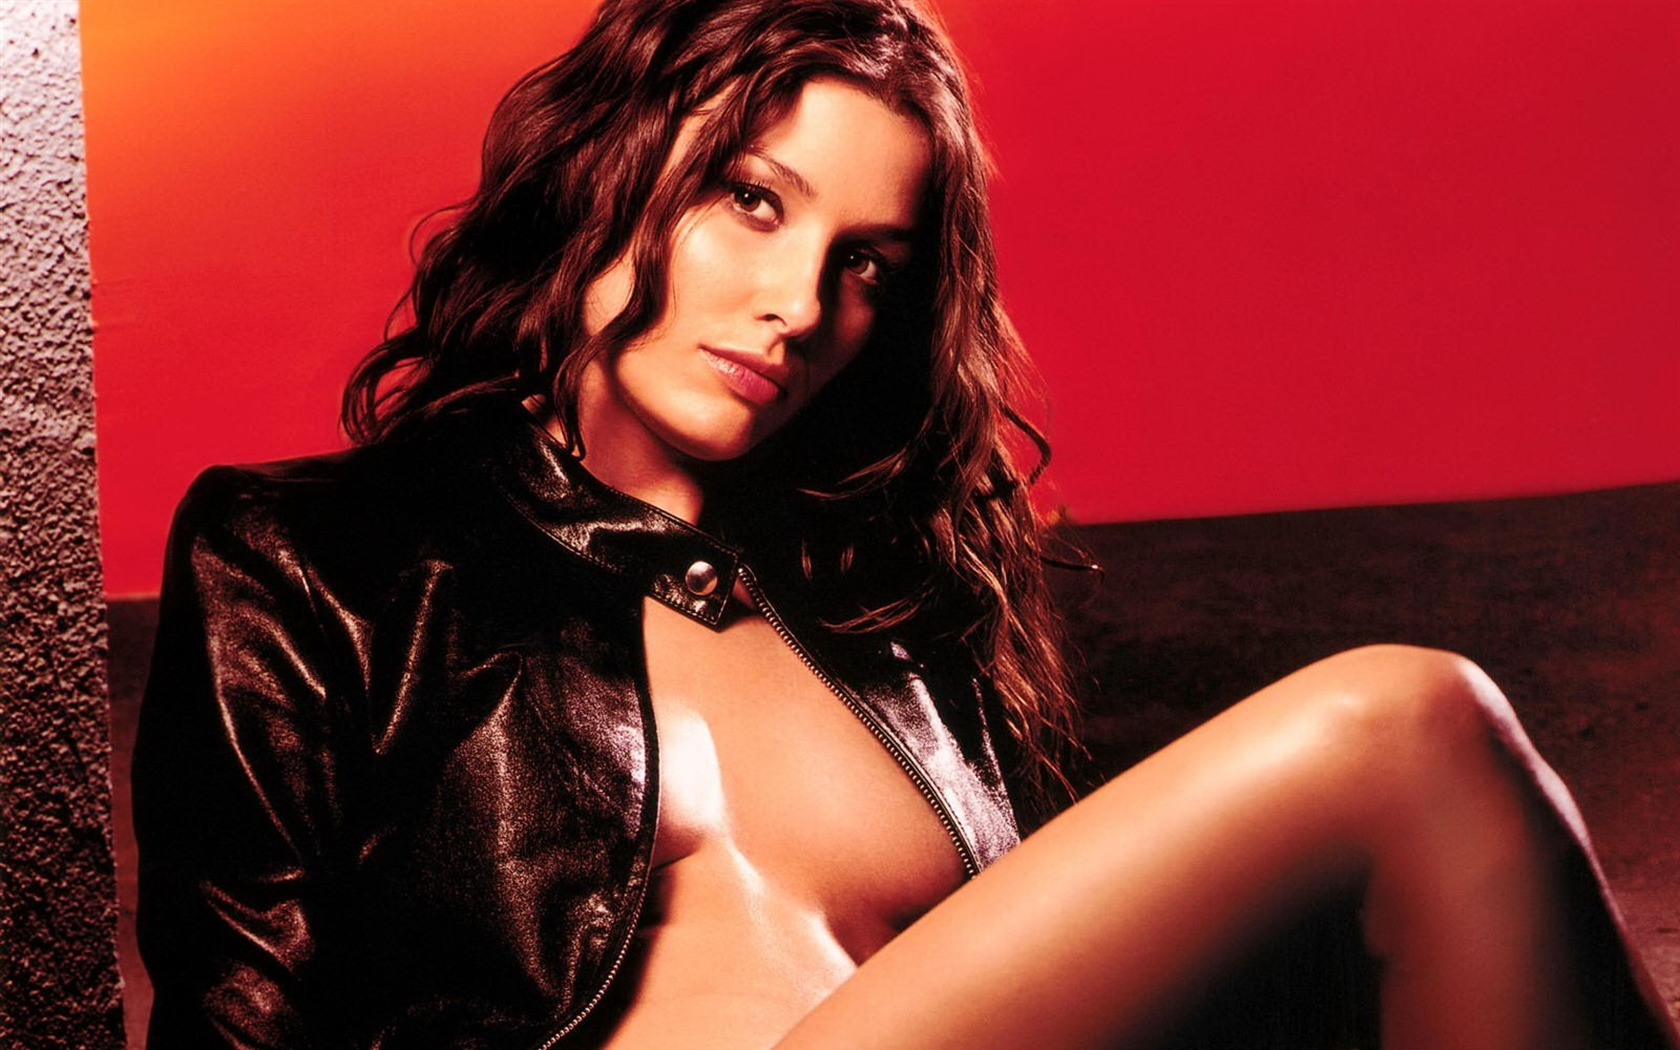 Bridget Moynahan #013 - 1680x1050 Wallpapers Pictures Photos Images